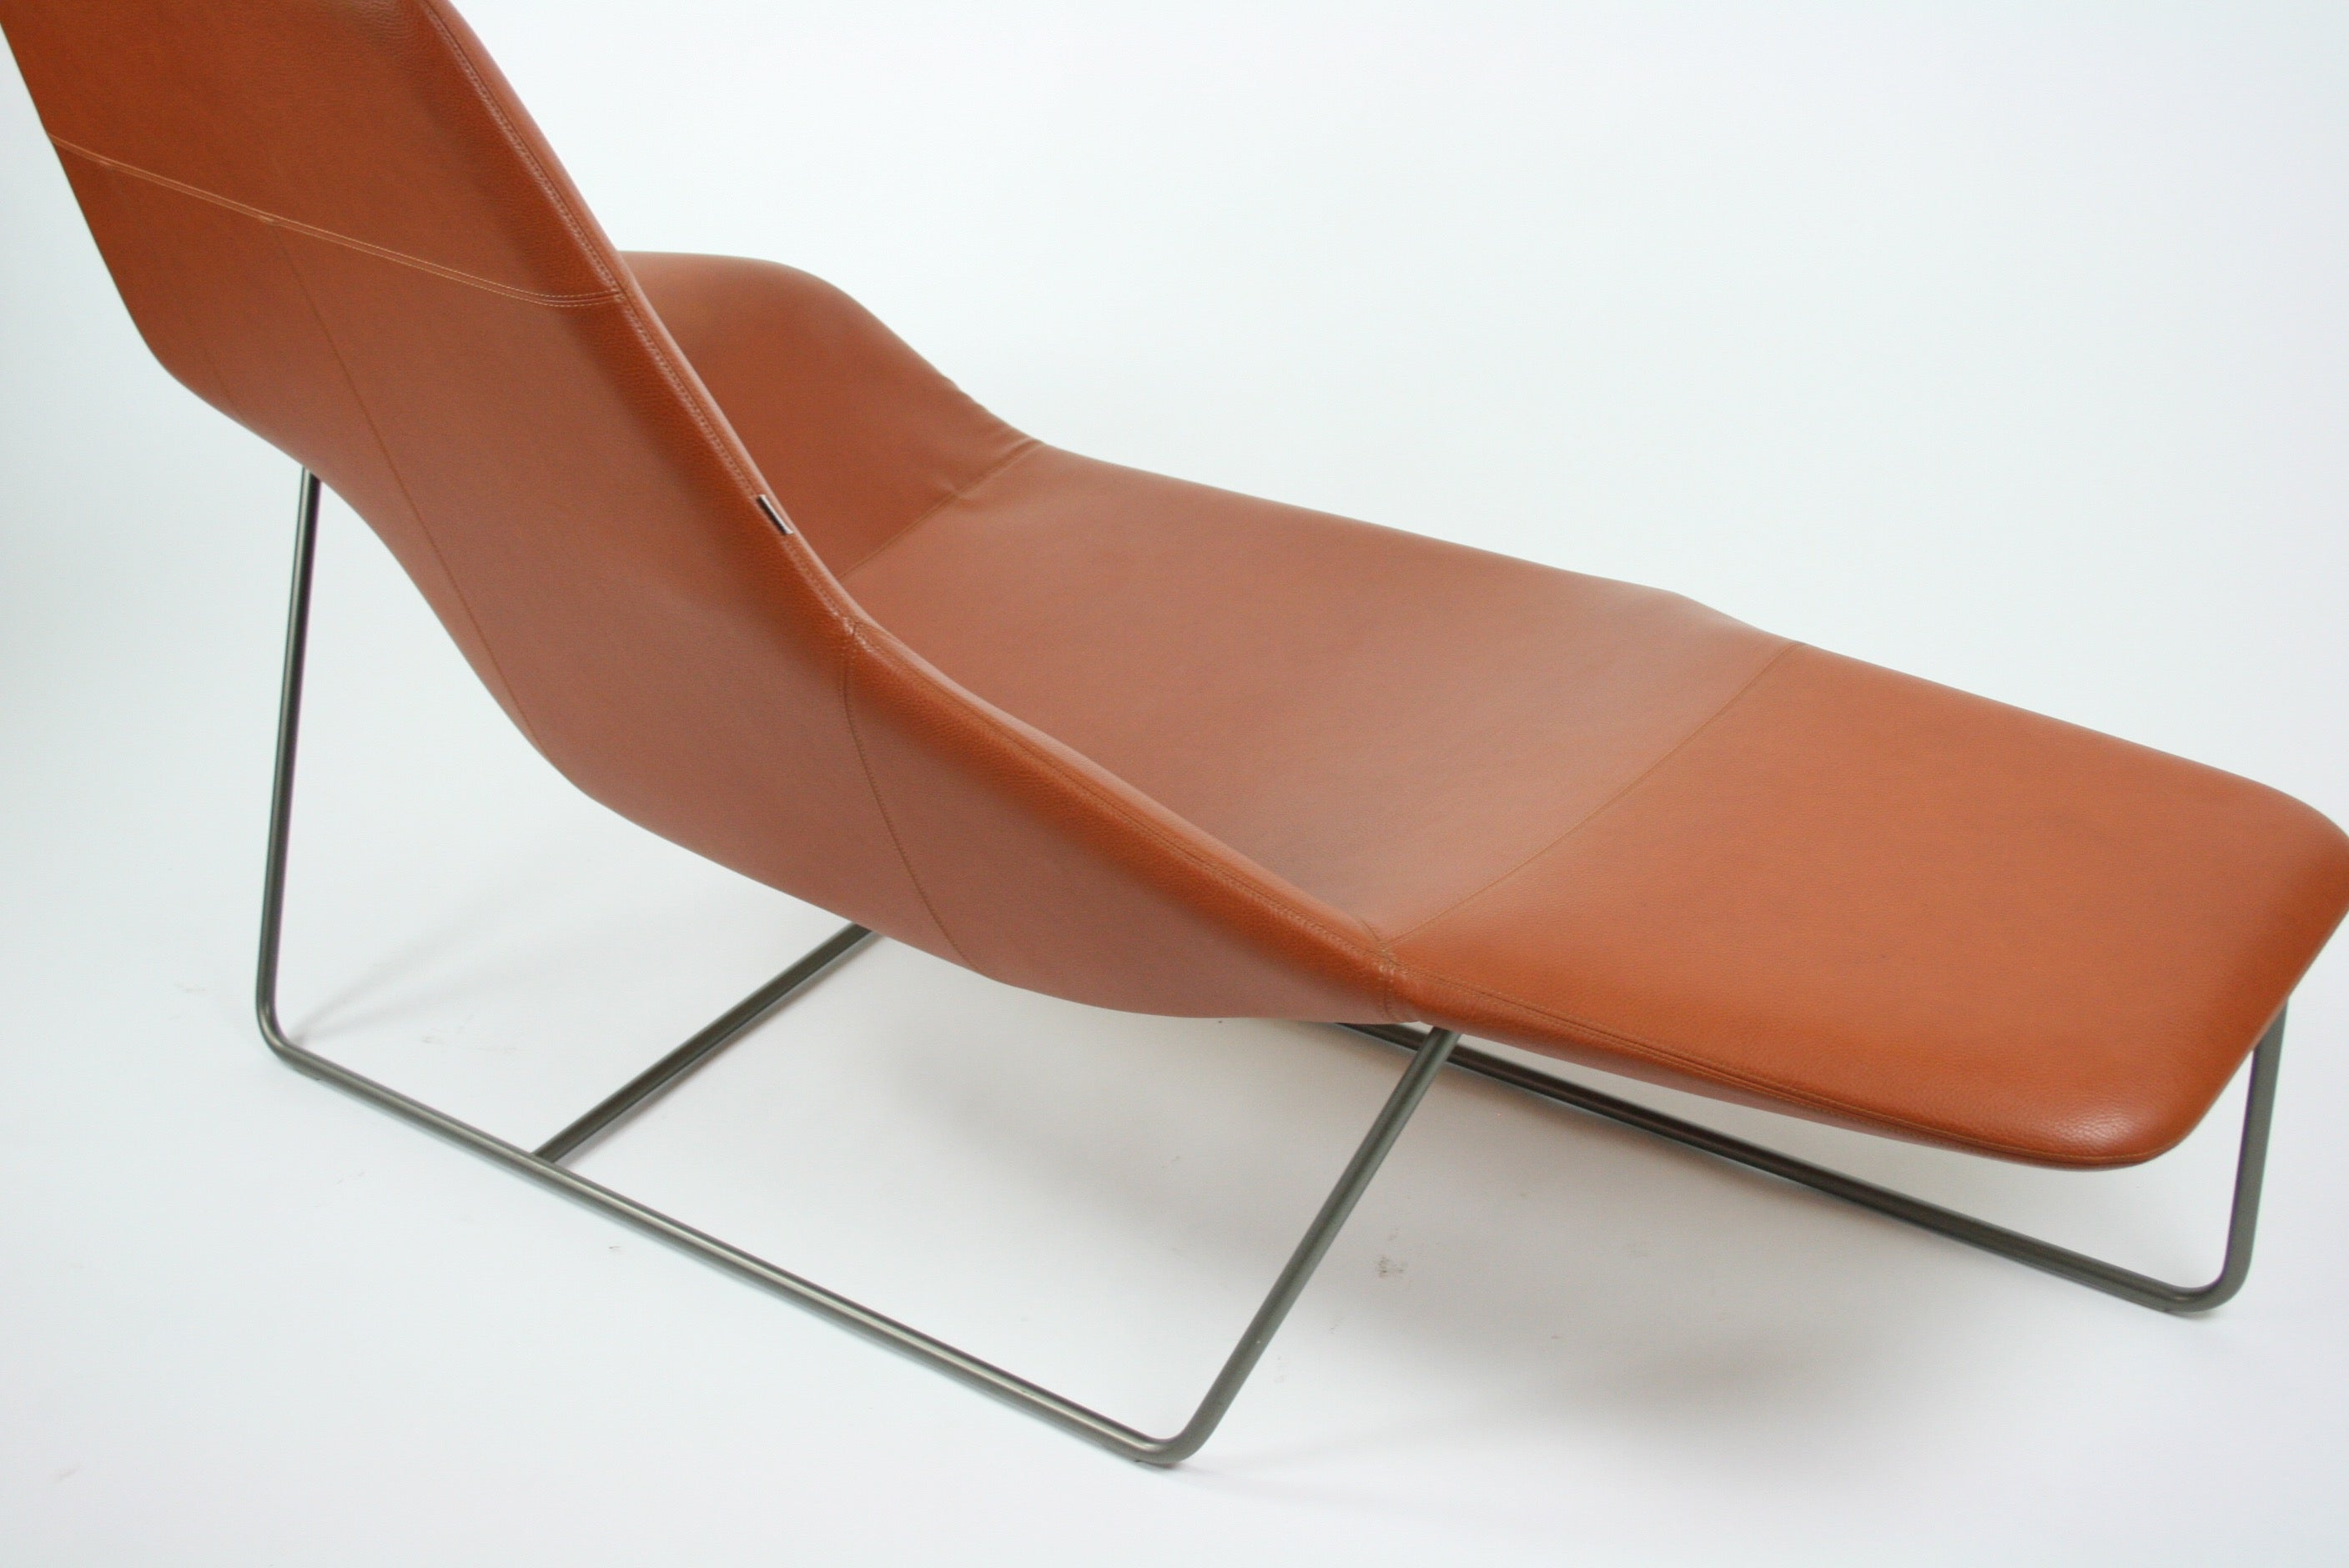 Zanotta Lama Chaise Lounge Chair Designed by Ludovica and ... on chaise recliner chair, chaise sofa sleeper, chaise furniture,